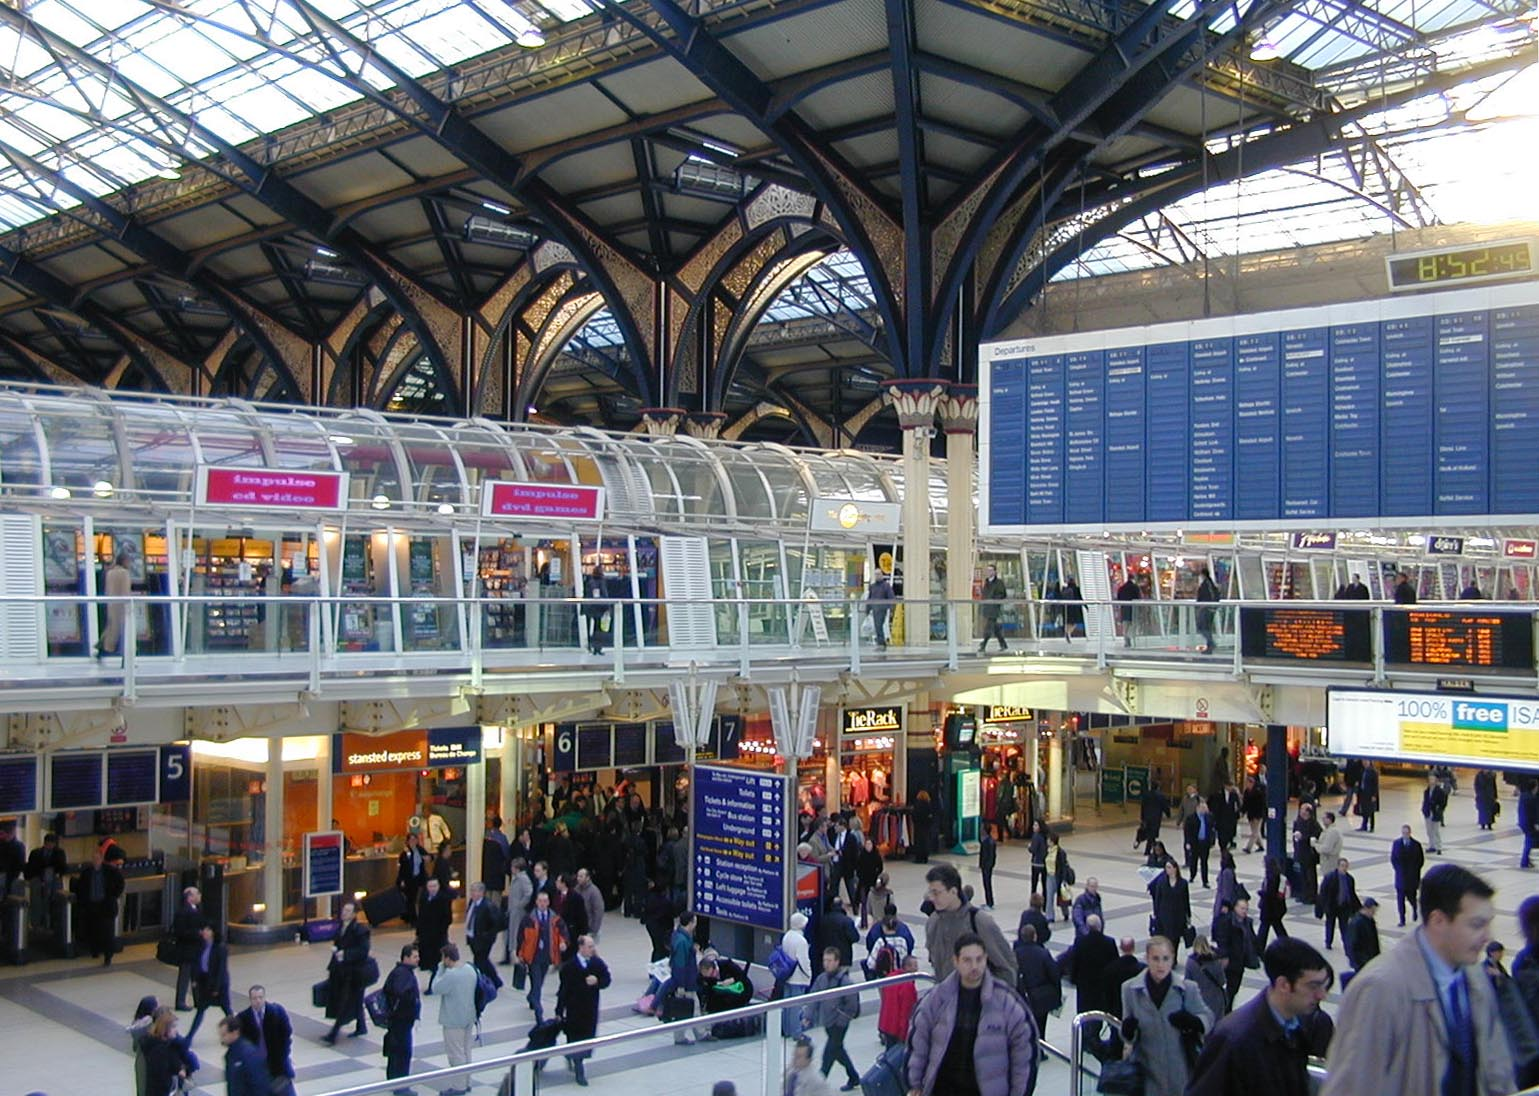 6-feb-2002-liverpool-street-station-concourse